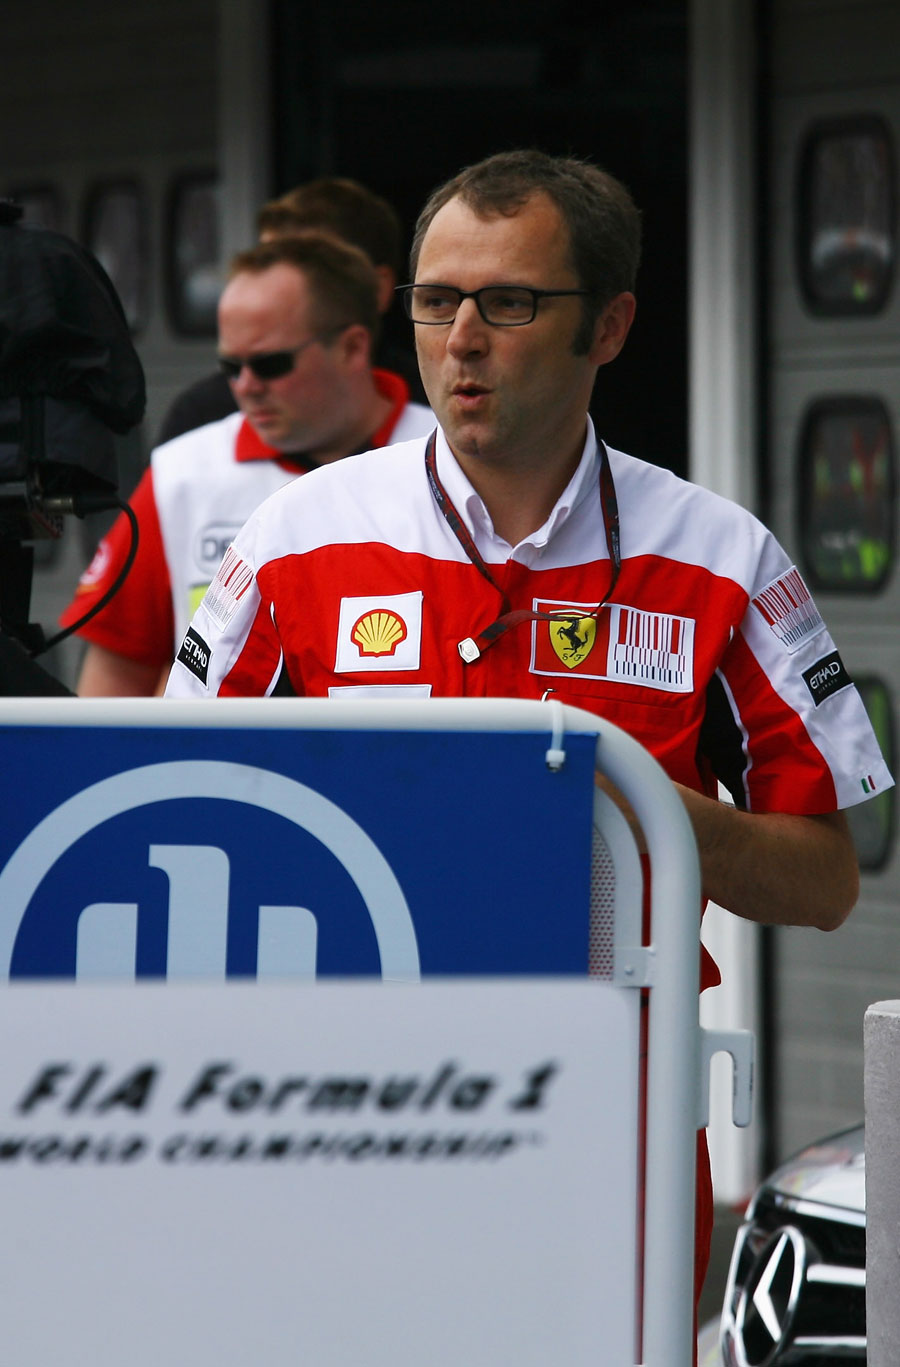 A sheepish Stefano Domenicali after the race